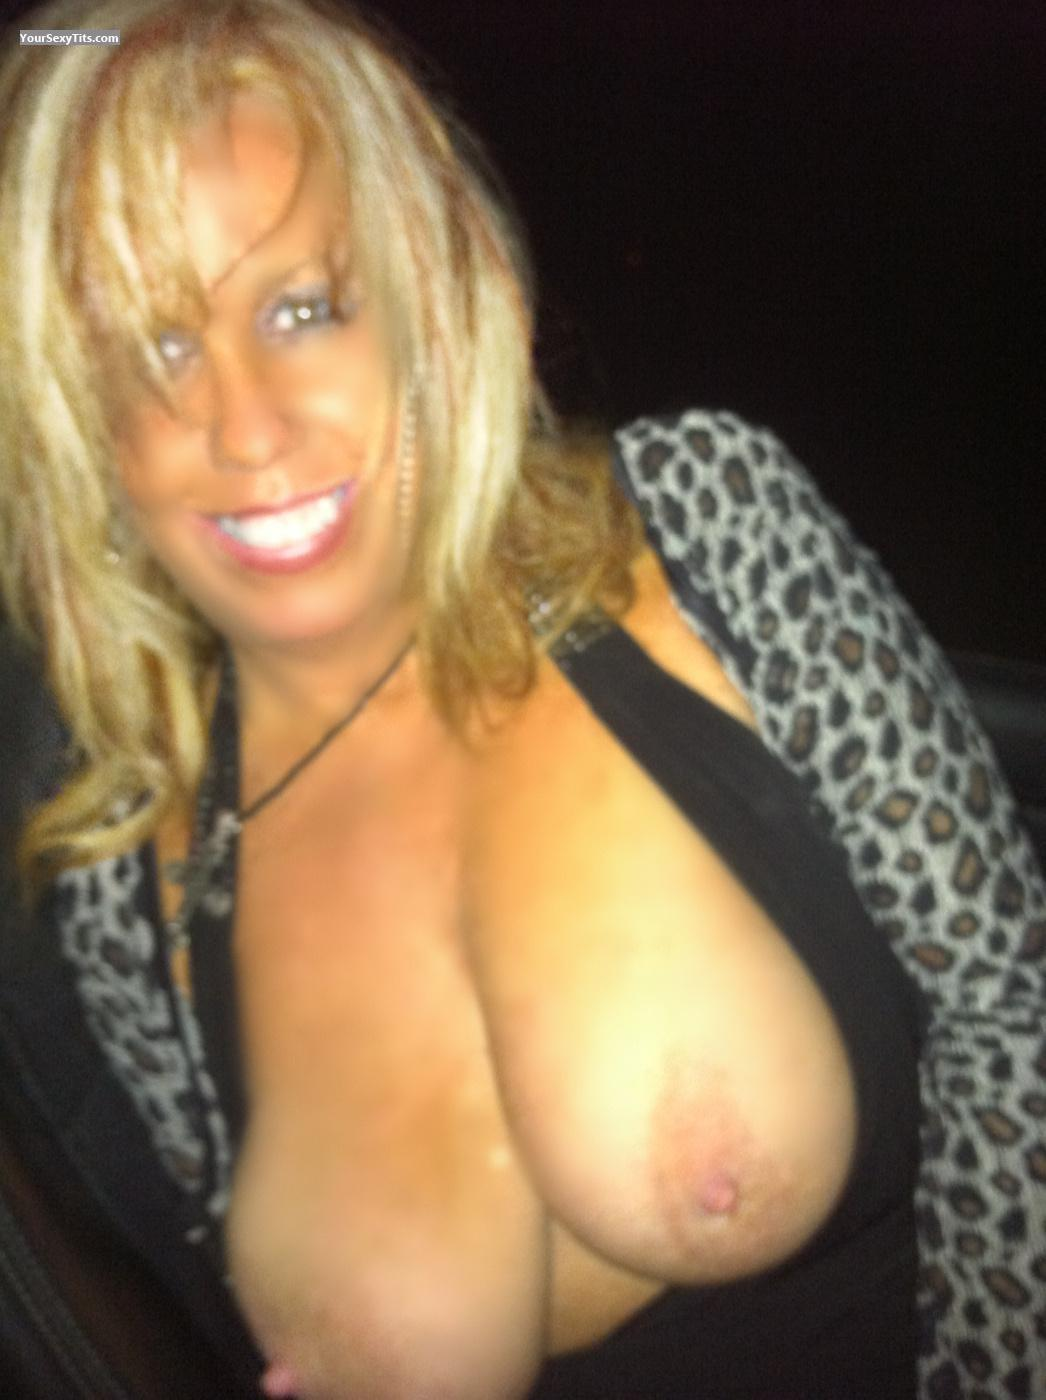 Tit Flash: Wife's Big Tits - Topless Sexylittlehotte from United States